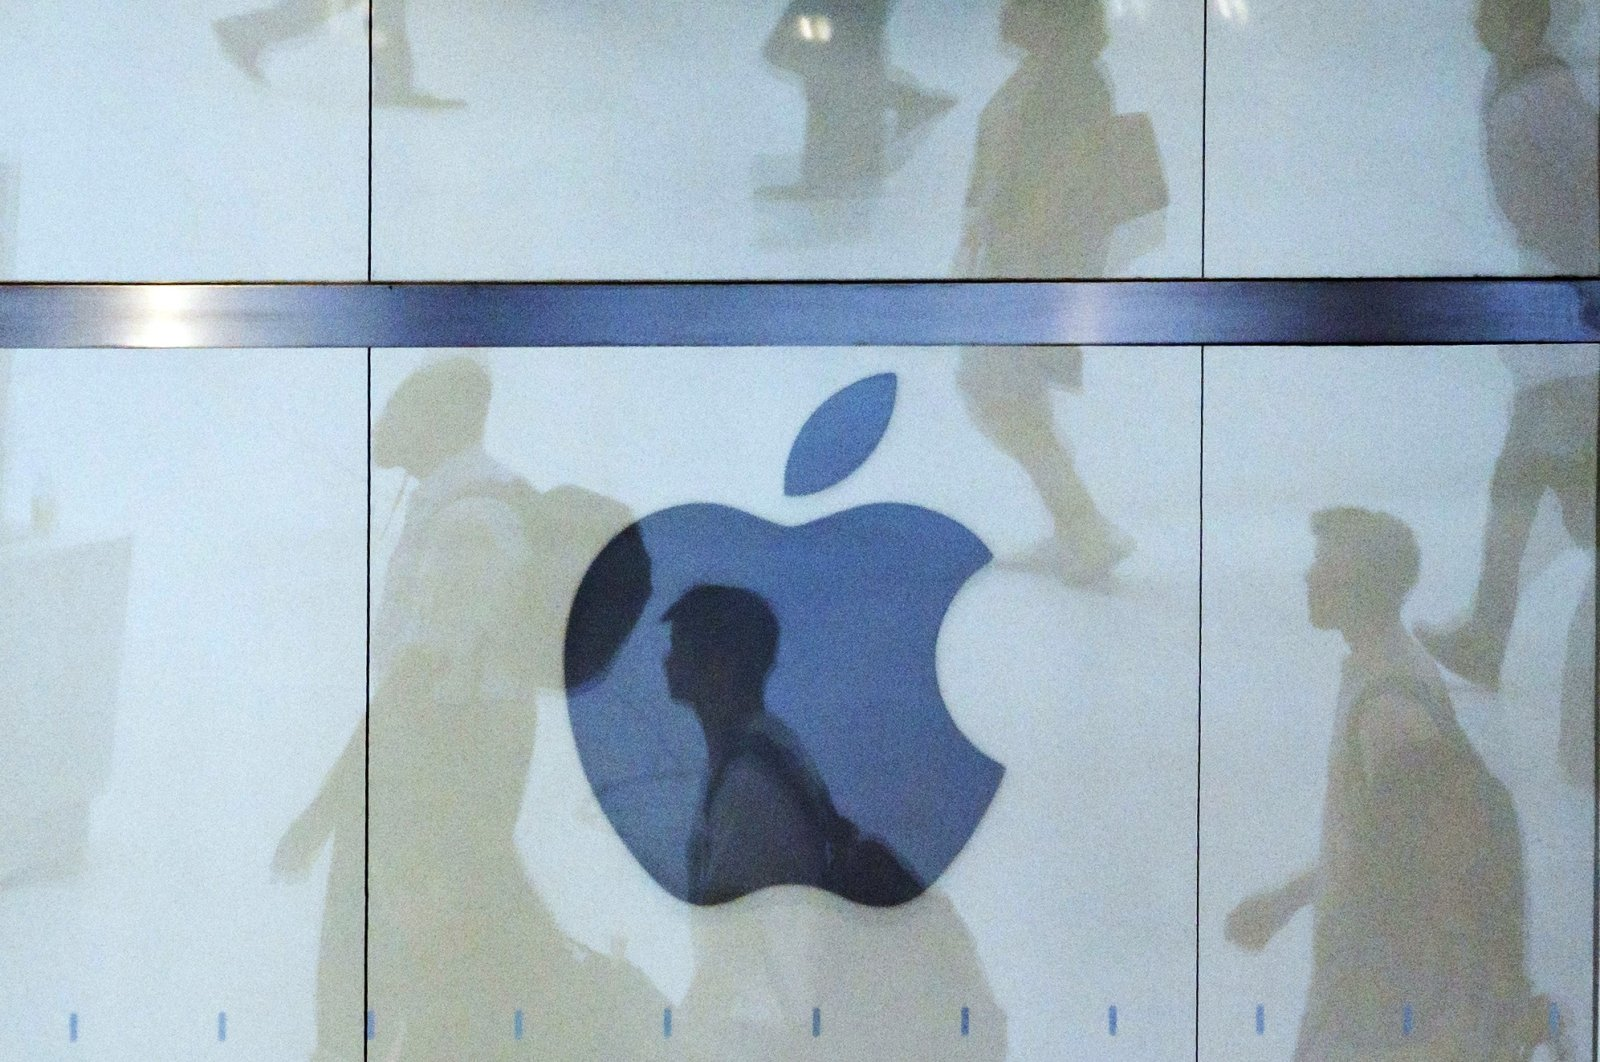 People walk past an Apple logo at an Apple store in New York City, New York, U.S., Aug. 1, 2018. (EPA Photo)